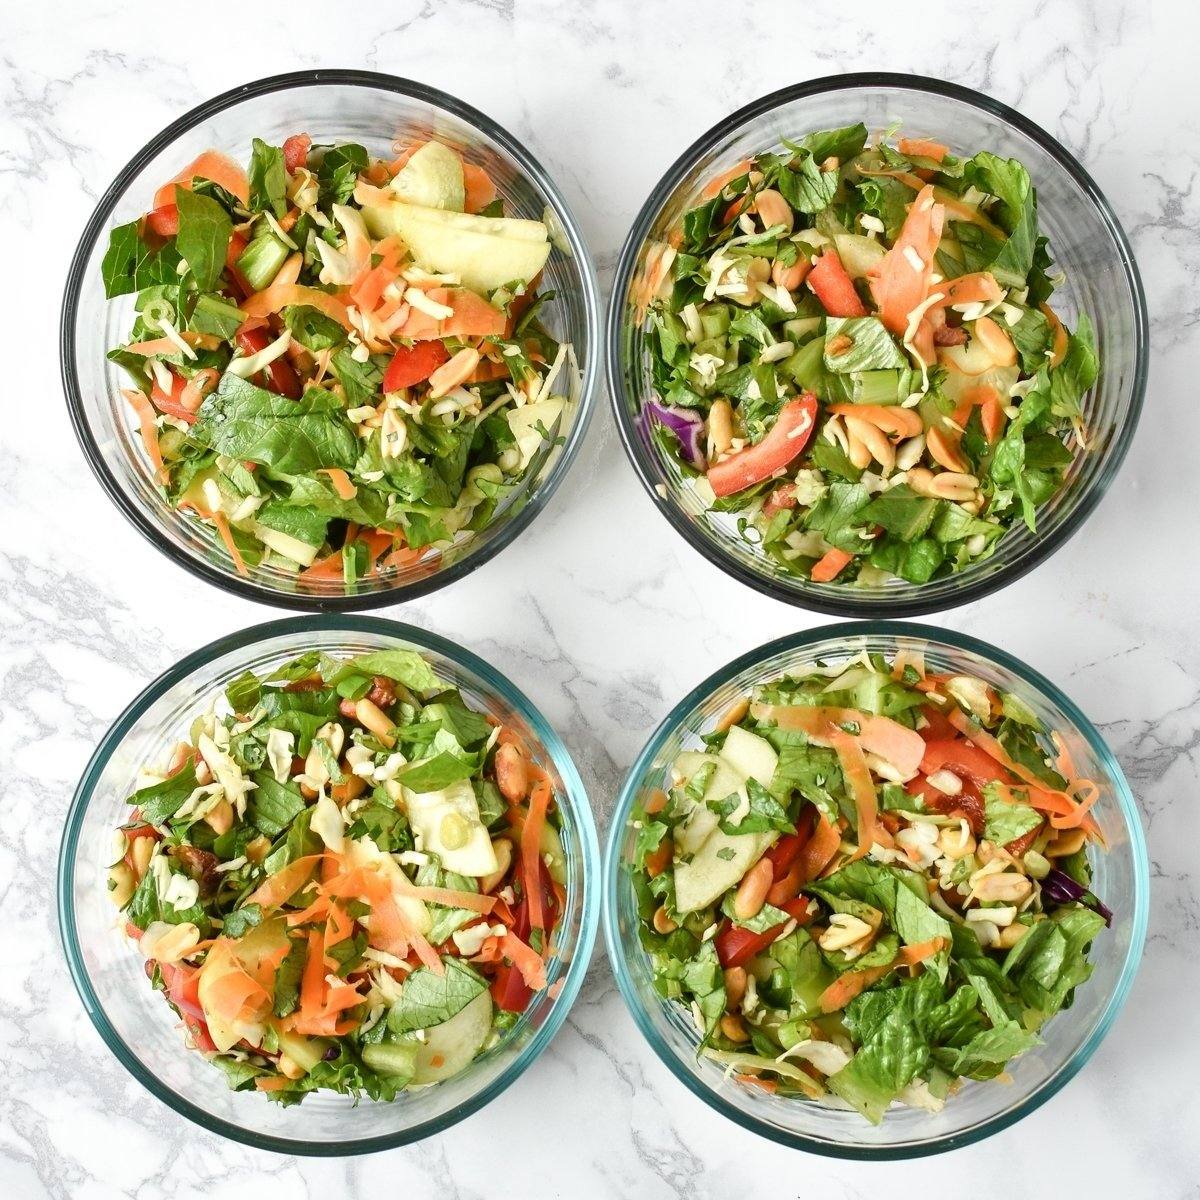 10 Lovable Cold Lunch Ideas For Work 16 make ahead cold lunch ideas to prep for work this week 1 2020